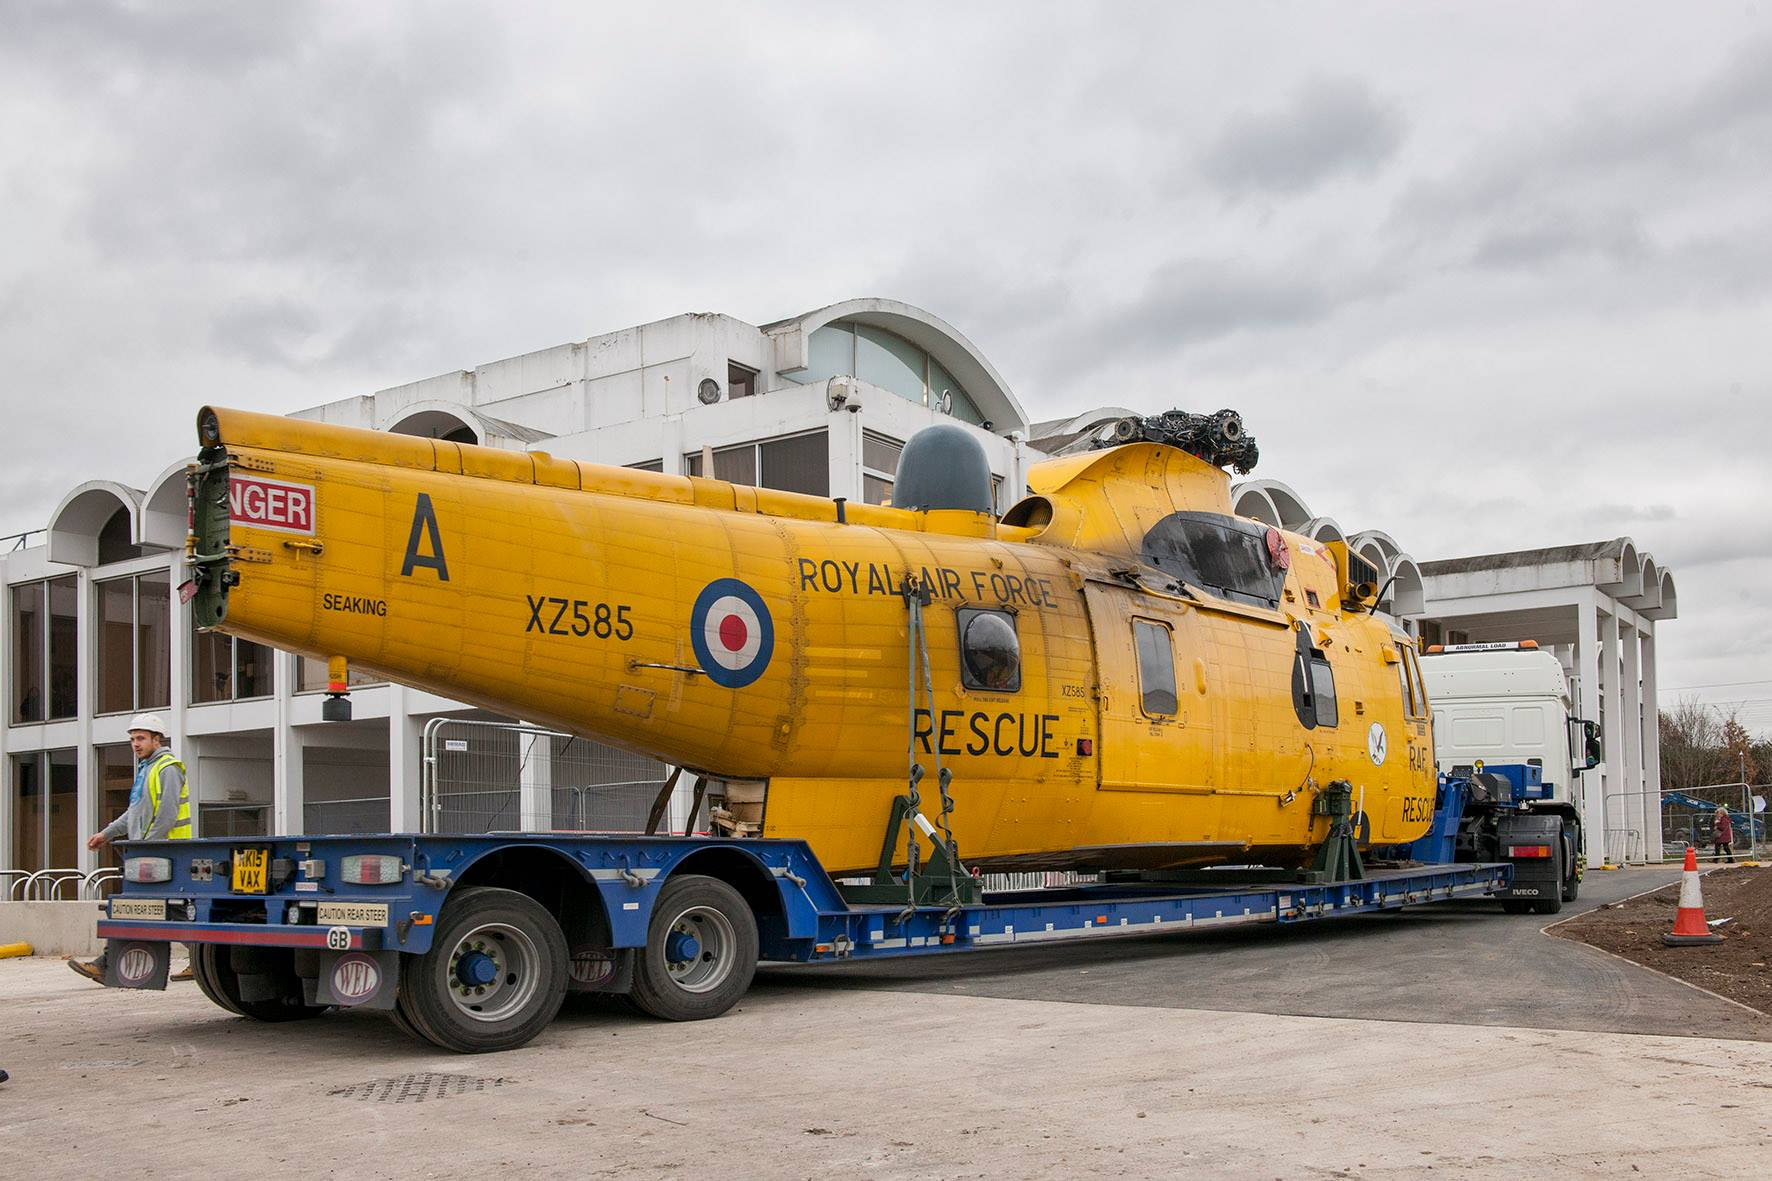 The Arrival of Westland Sea King Helicopter HAR3